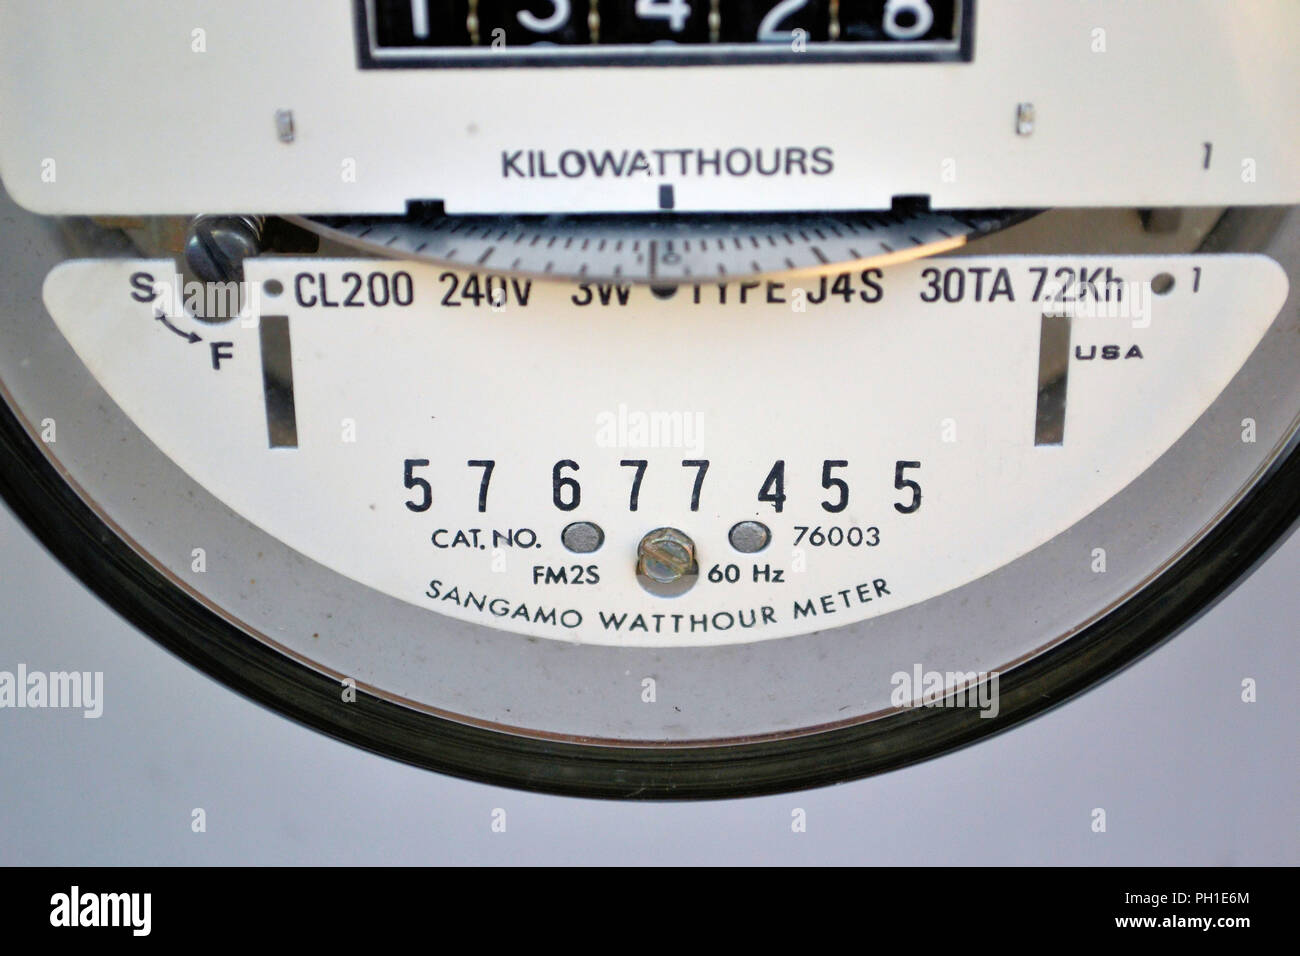 Close-up of a Sangamo electric watthour meter. - Stock Image